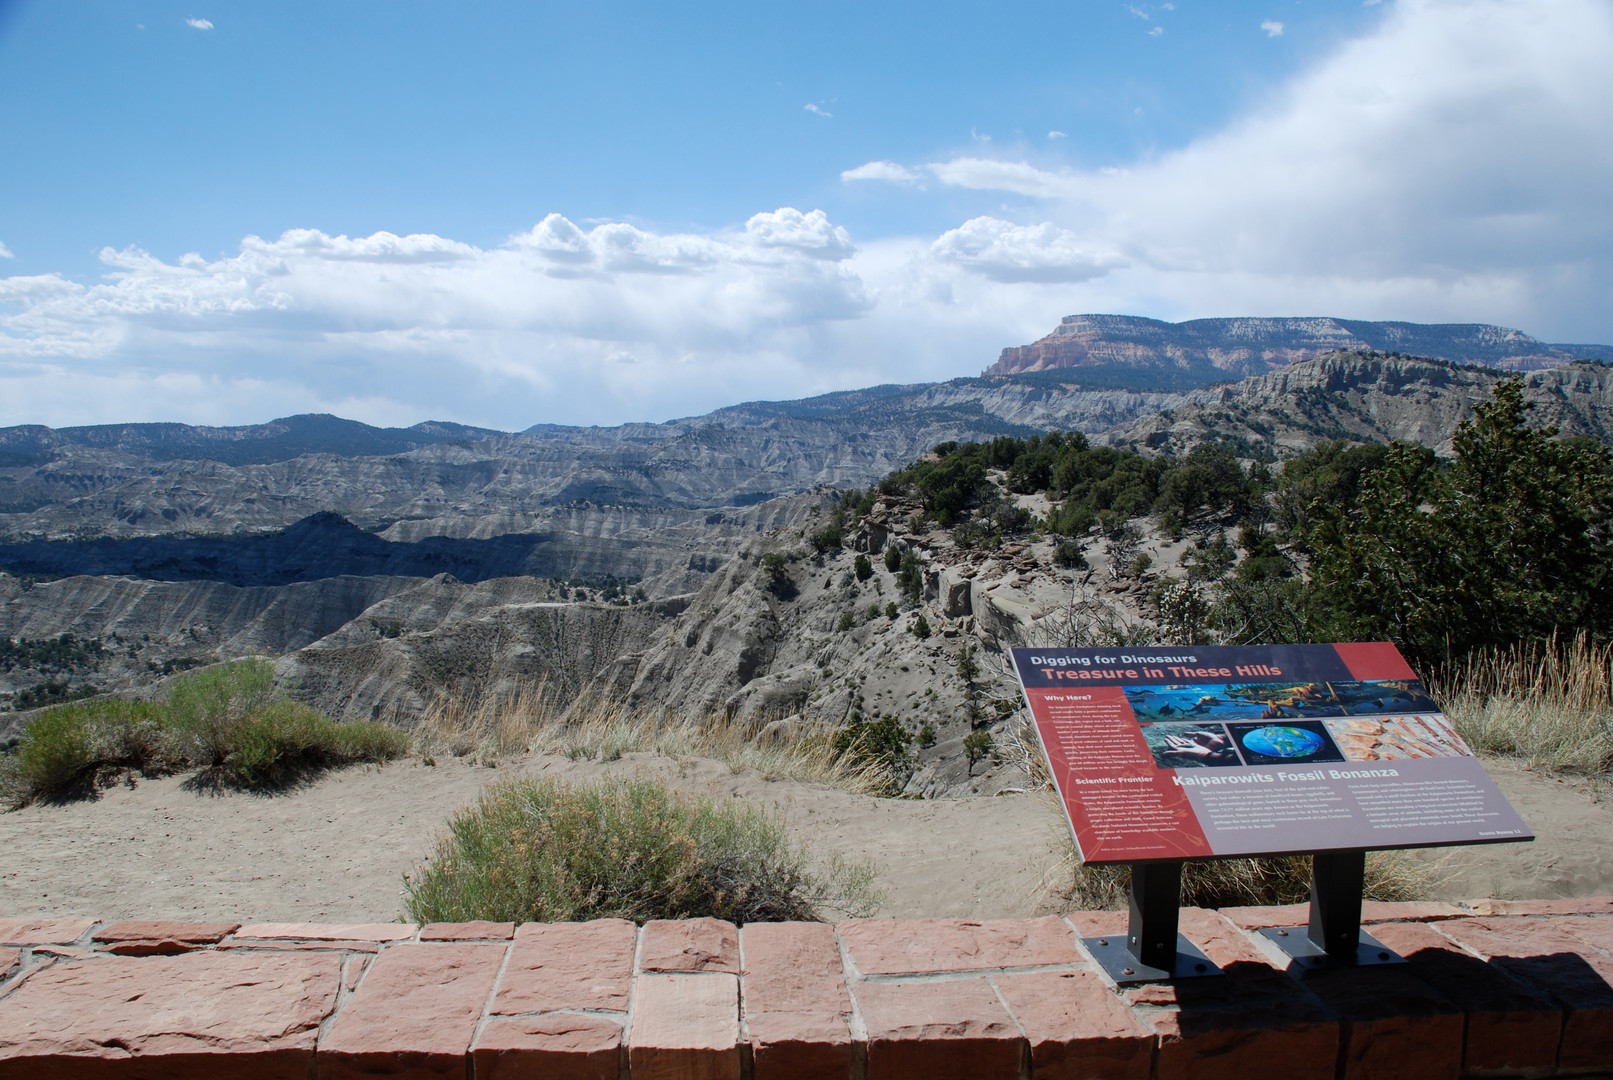 Dinosaur fossils wayside along Scenic Byway 12